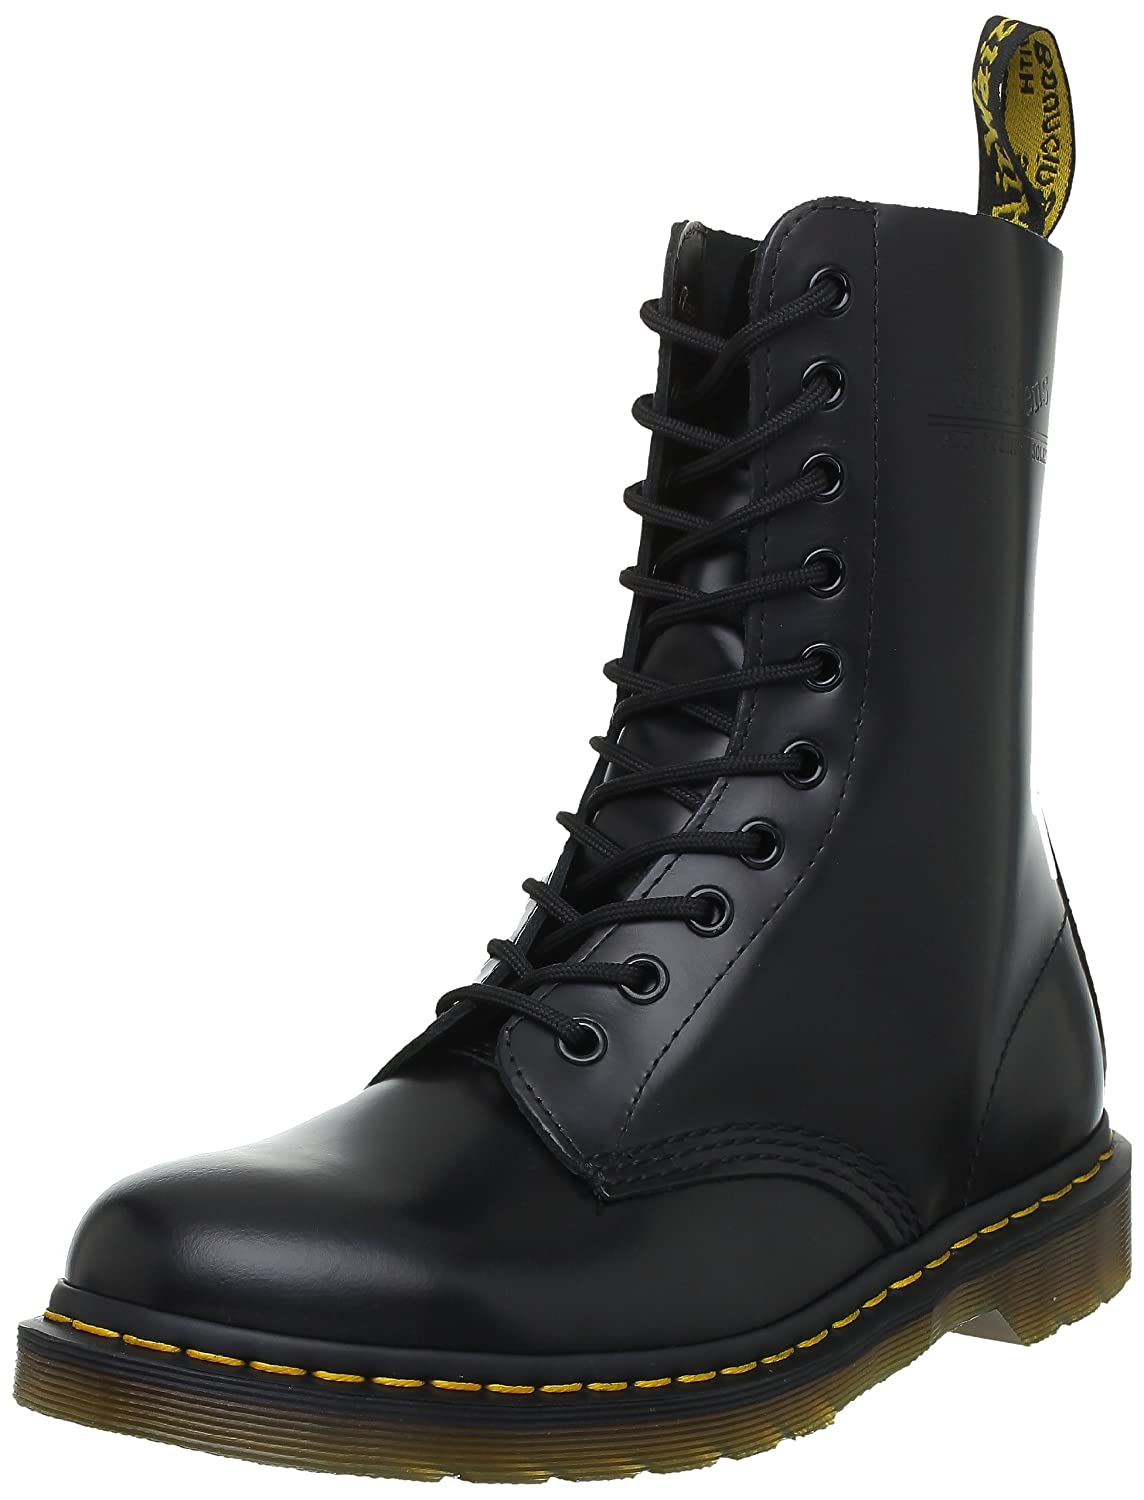 Dr. Martens Original 10 Eye Boot B000BNXECM 12 UK (US Men's 13 M/Women's 14 M)|Black Smooth